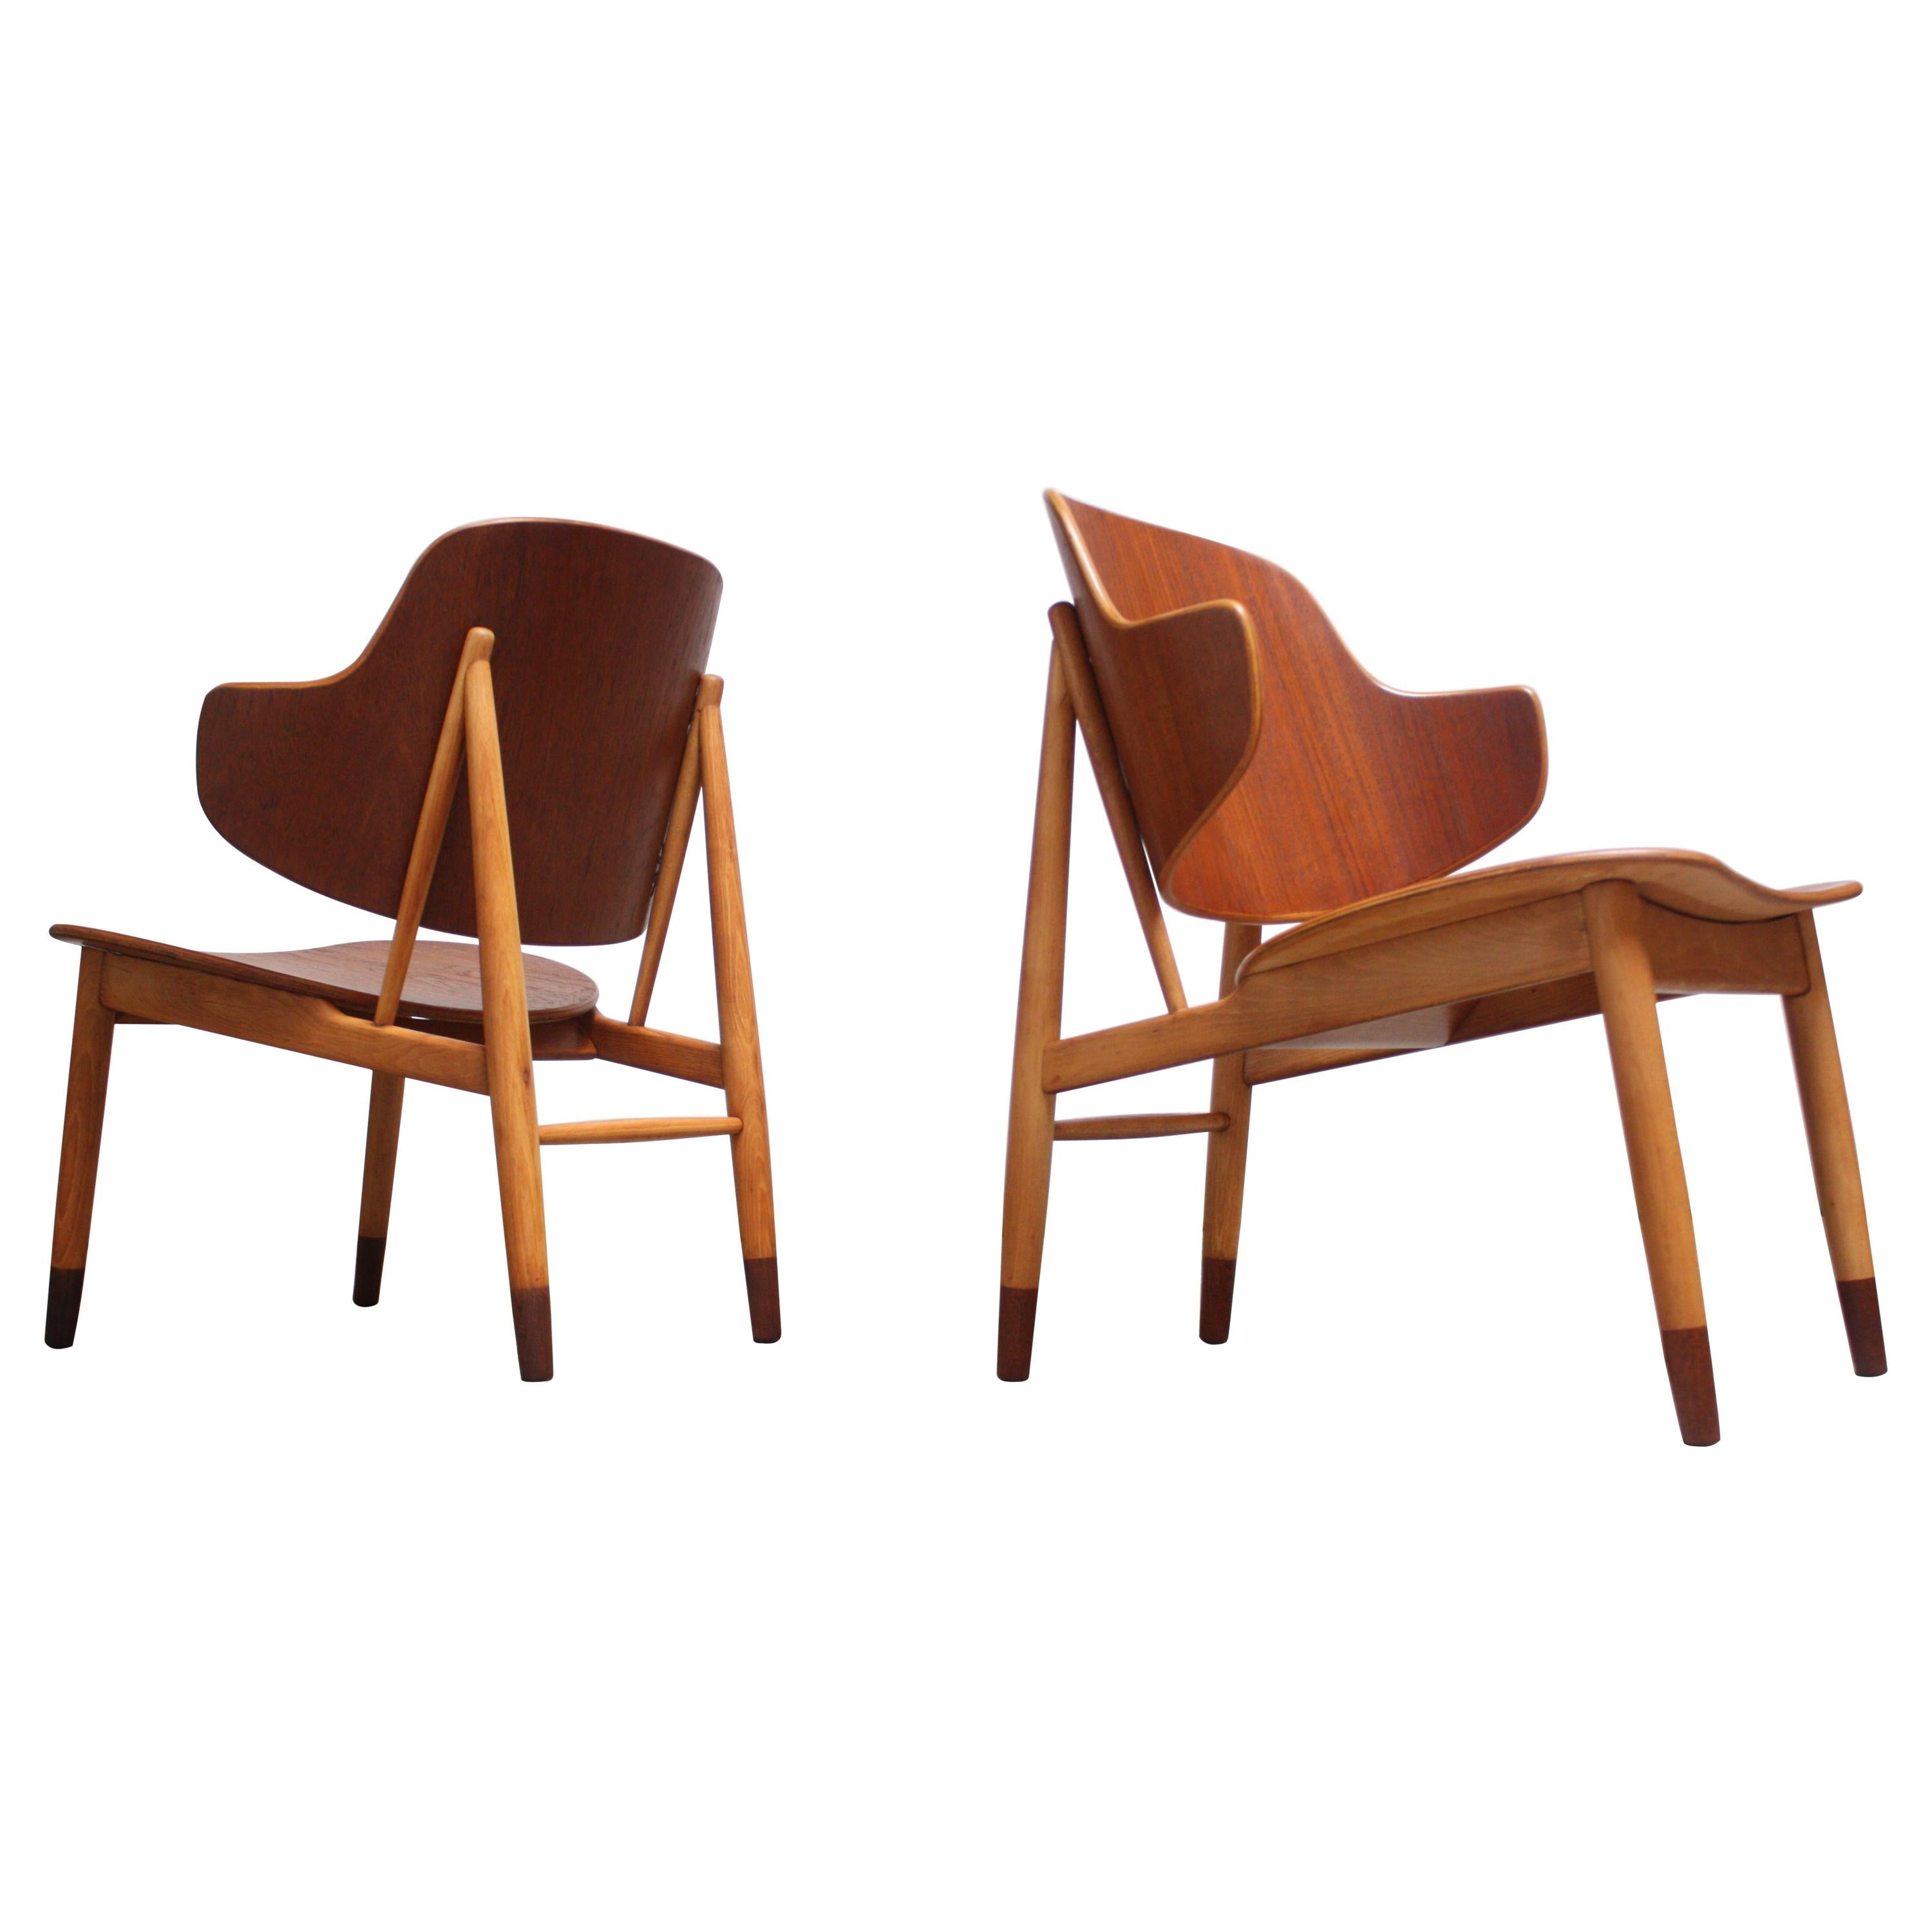 Pair of Danish Sculptural Shell Chairs by Ib Kofod-Larsen in Teak and Beech